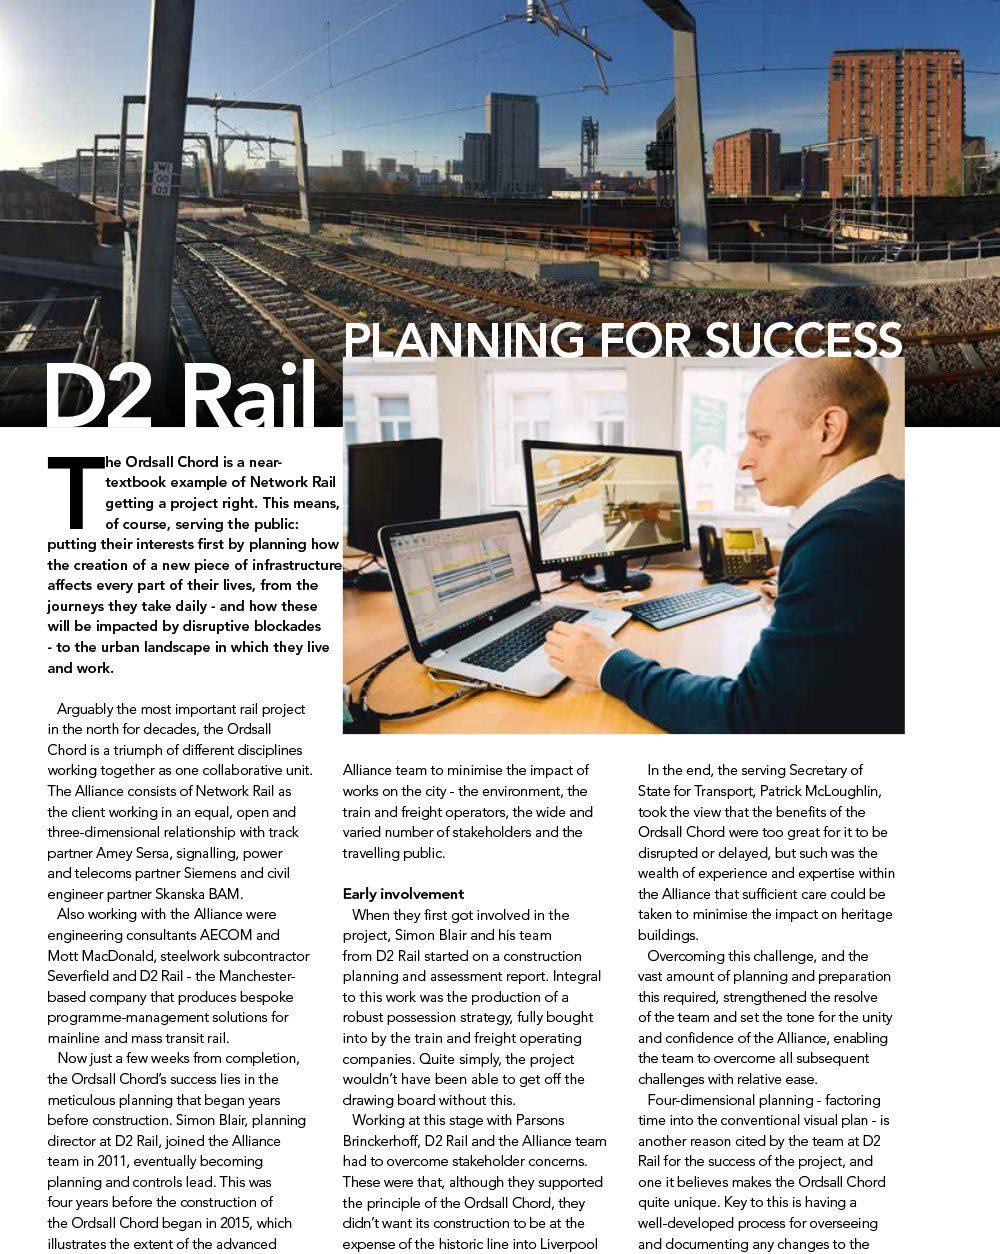 Rail Engineer feature for D2 Rail - Planning for Success